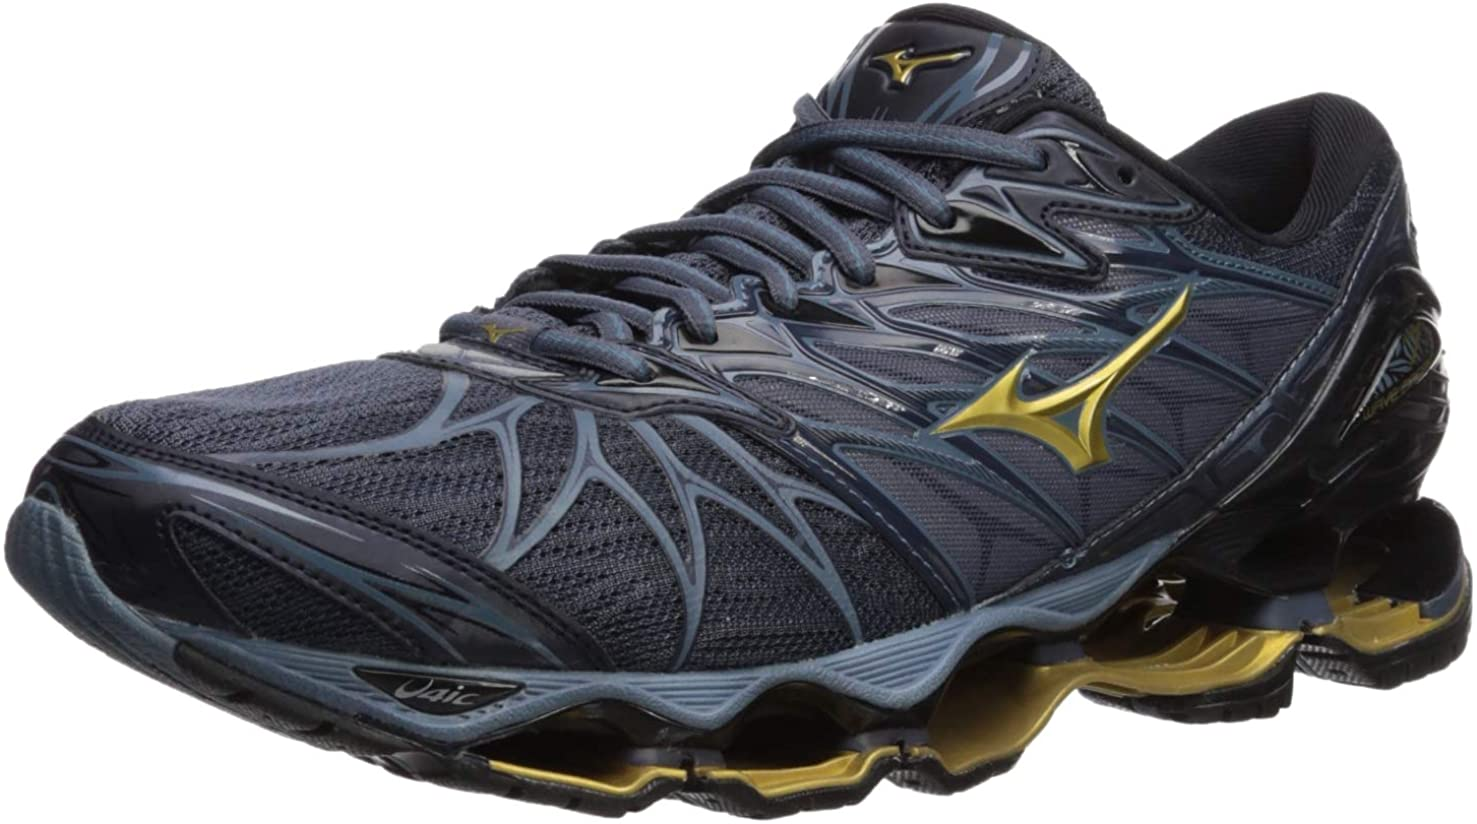 Wave Prophecy 7 Running Shoes | eBay